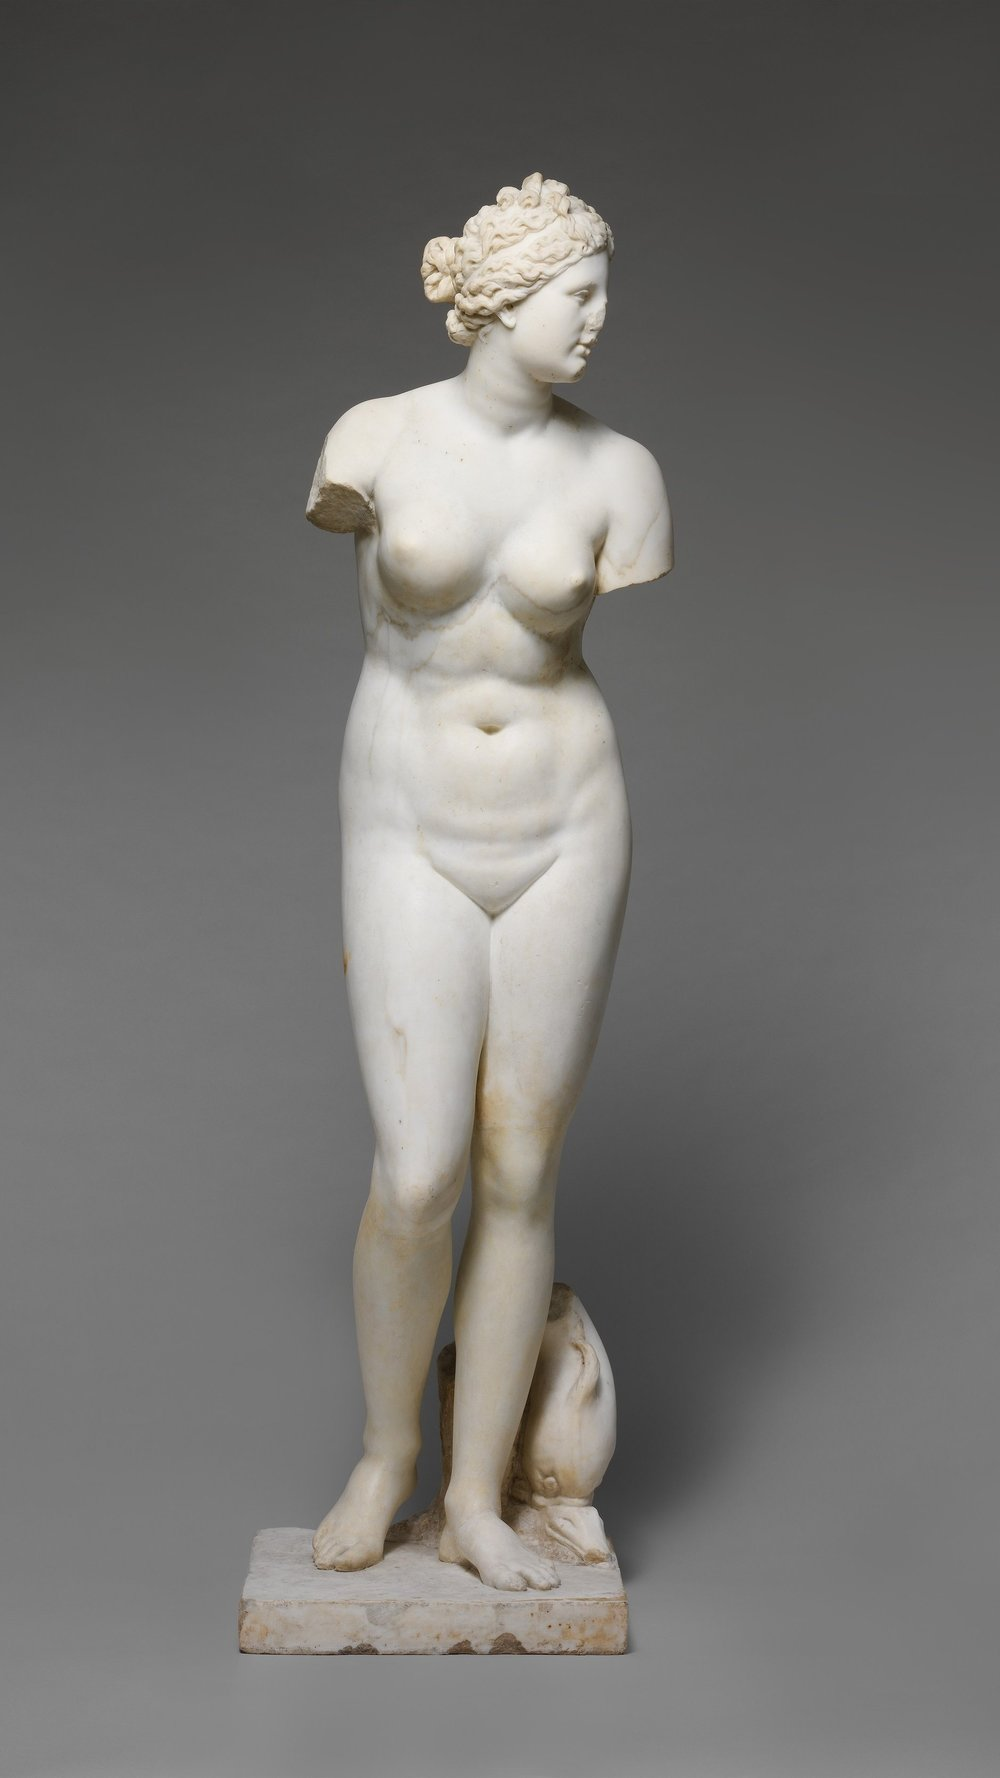 Aphrodite - Goddess of Beauty and Sex